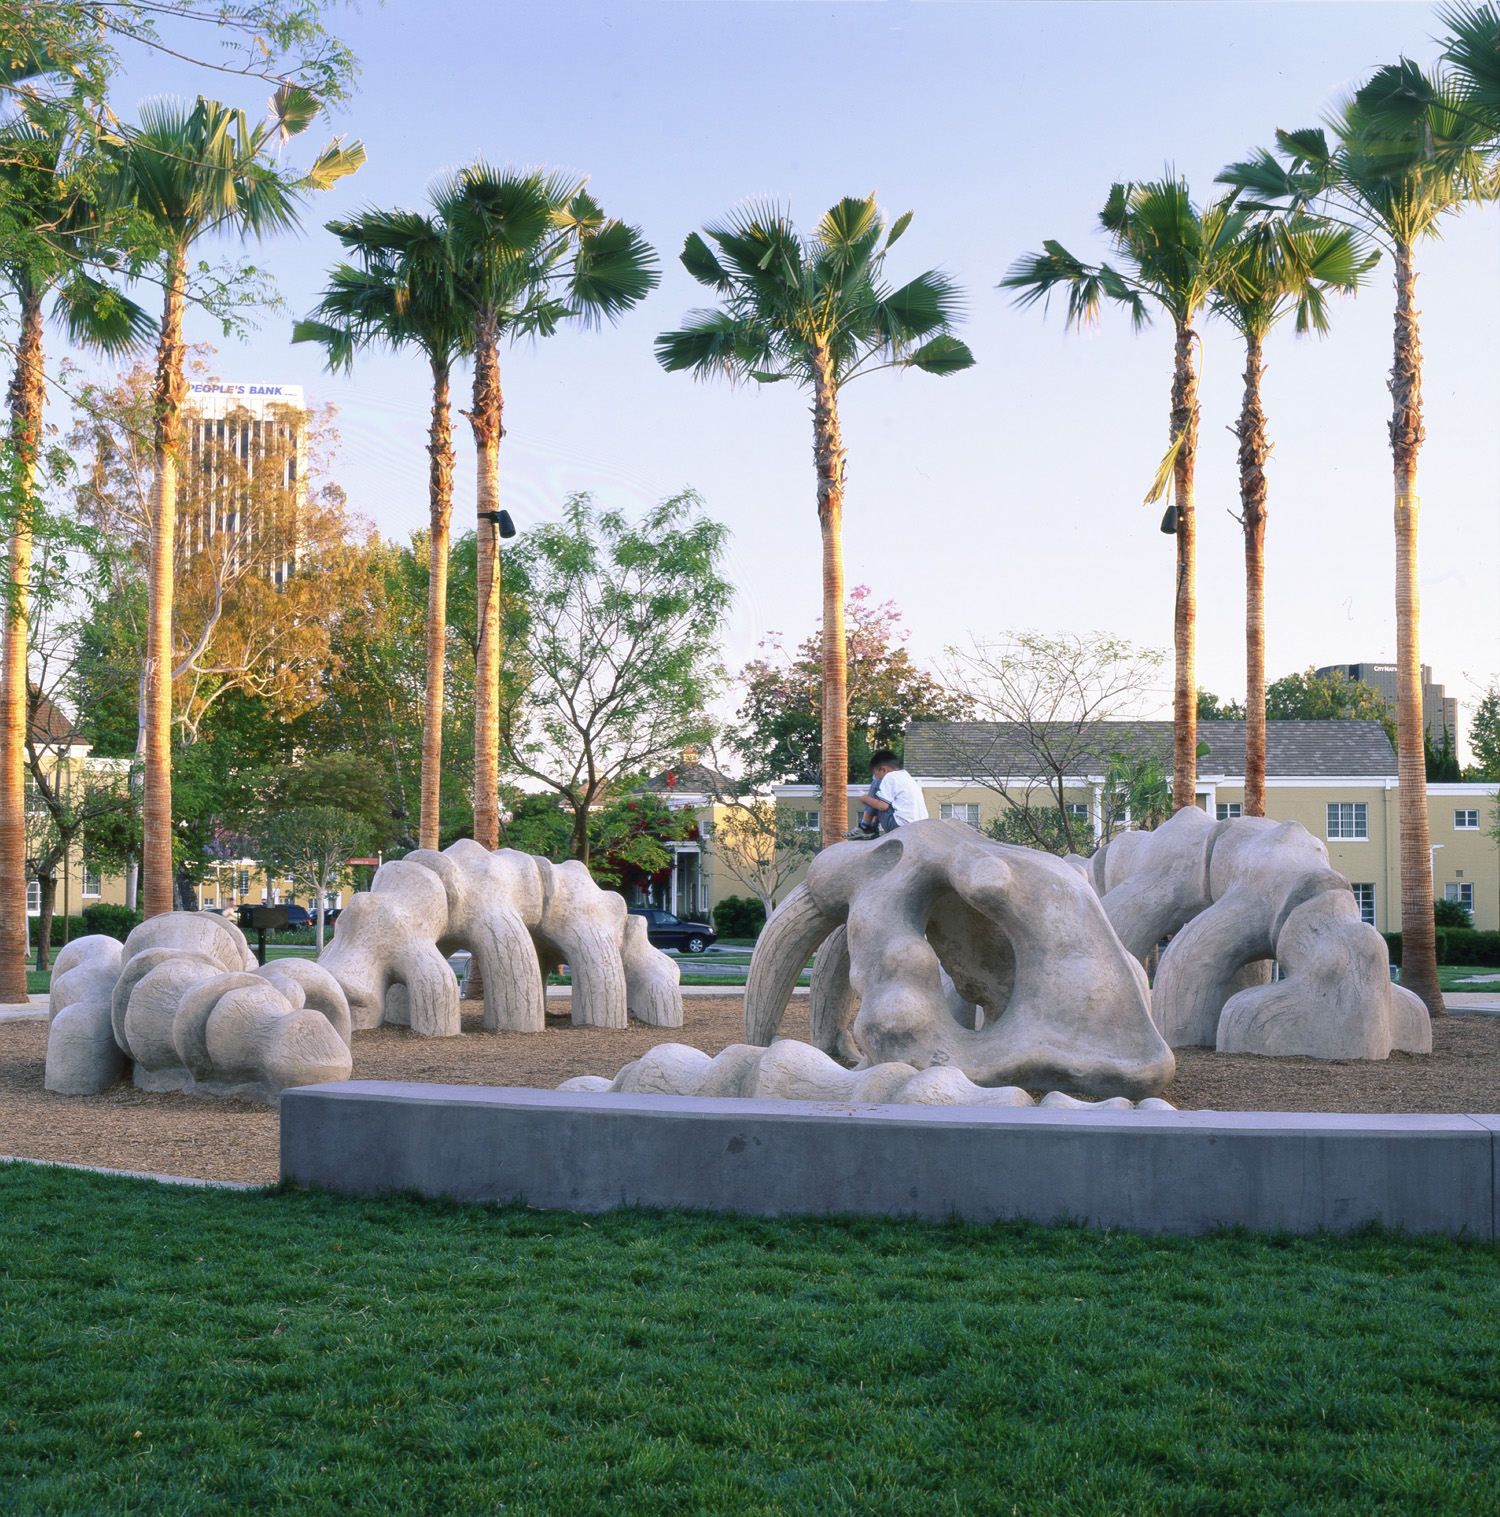 Encircled by palm trees lining the outdoor grounds of Park La Brea, a fossil-like sculpture of a saber tooth cat emerges, half-sunken, from a sandy floor.  To the passer-by and the public imagination, this skeletal sculpture injects a modern, iconic interpretation of natural history into the realm of unusual public artwork.  However contemporary its purpose may be, the sculpture's dramatically enlarged scale and dinosaur-like appearance produce a playful investigation into the prehistoric life force that once animated Los Angeles'sprawling desert basin.  Only blocks away, the La Brea tar pits - one of the most recognized fossil localities of the Earth's last Ice Age - draw crowds of thousands each year to study and learn about its peculiar geographical and geological personality.  These remarkably life-like, sculpted remains of a storybook creature bring imaginative access to La Brea's fossil excavation pits and unearth the forgotten history of a modern metropolis.  Residing at a unique juncture of the arts and recreation, and delicately integrated with its surrounding landscape, this sculpture also has a practical purpose: a children's playground and climbing structure.  While interactions with fossilized remains are typically limited to detached observation, this sculpture invites the viewer to touch, explore, and discover its disjoined features.